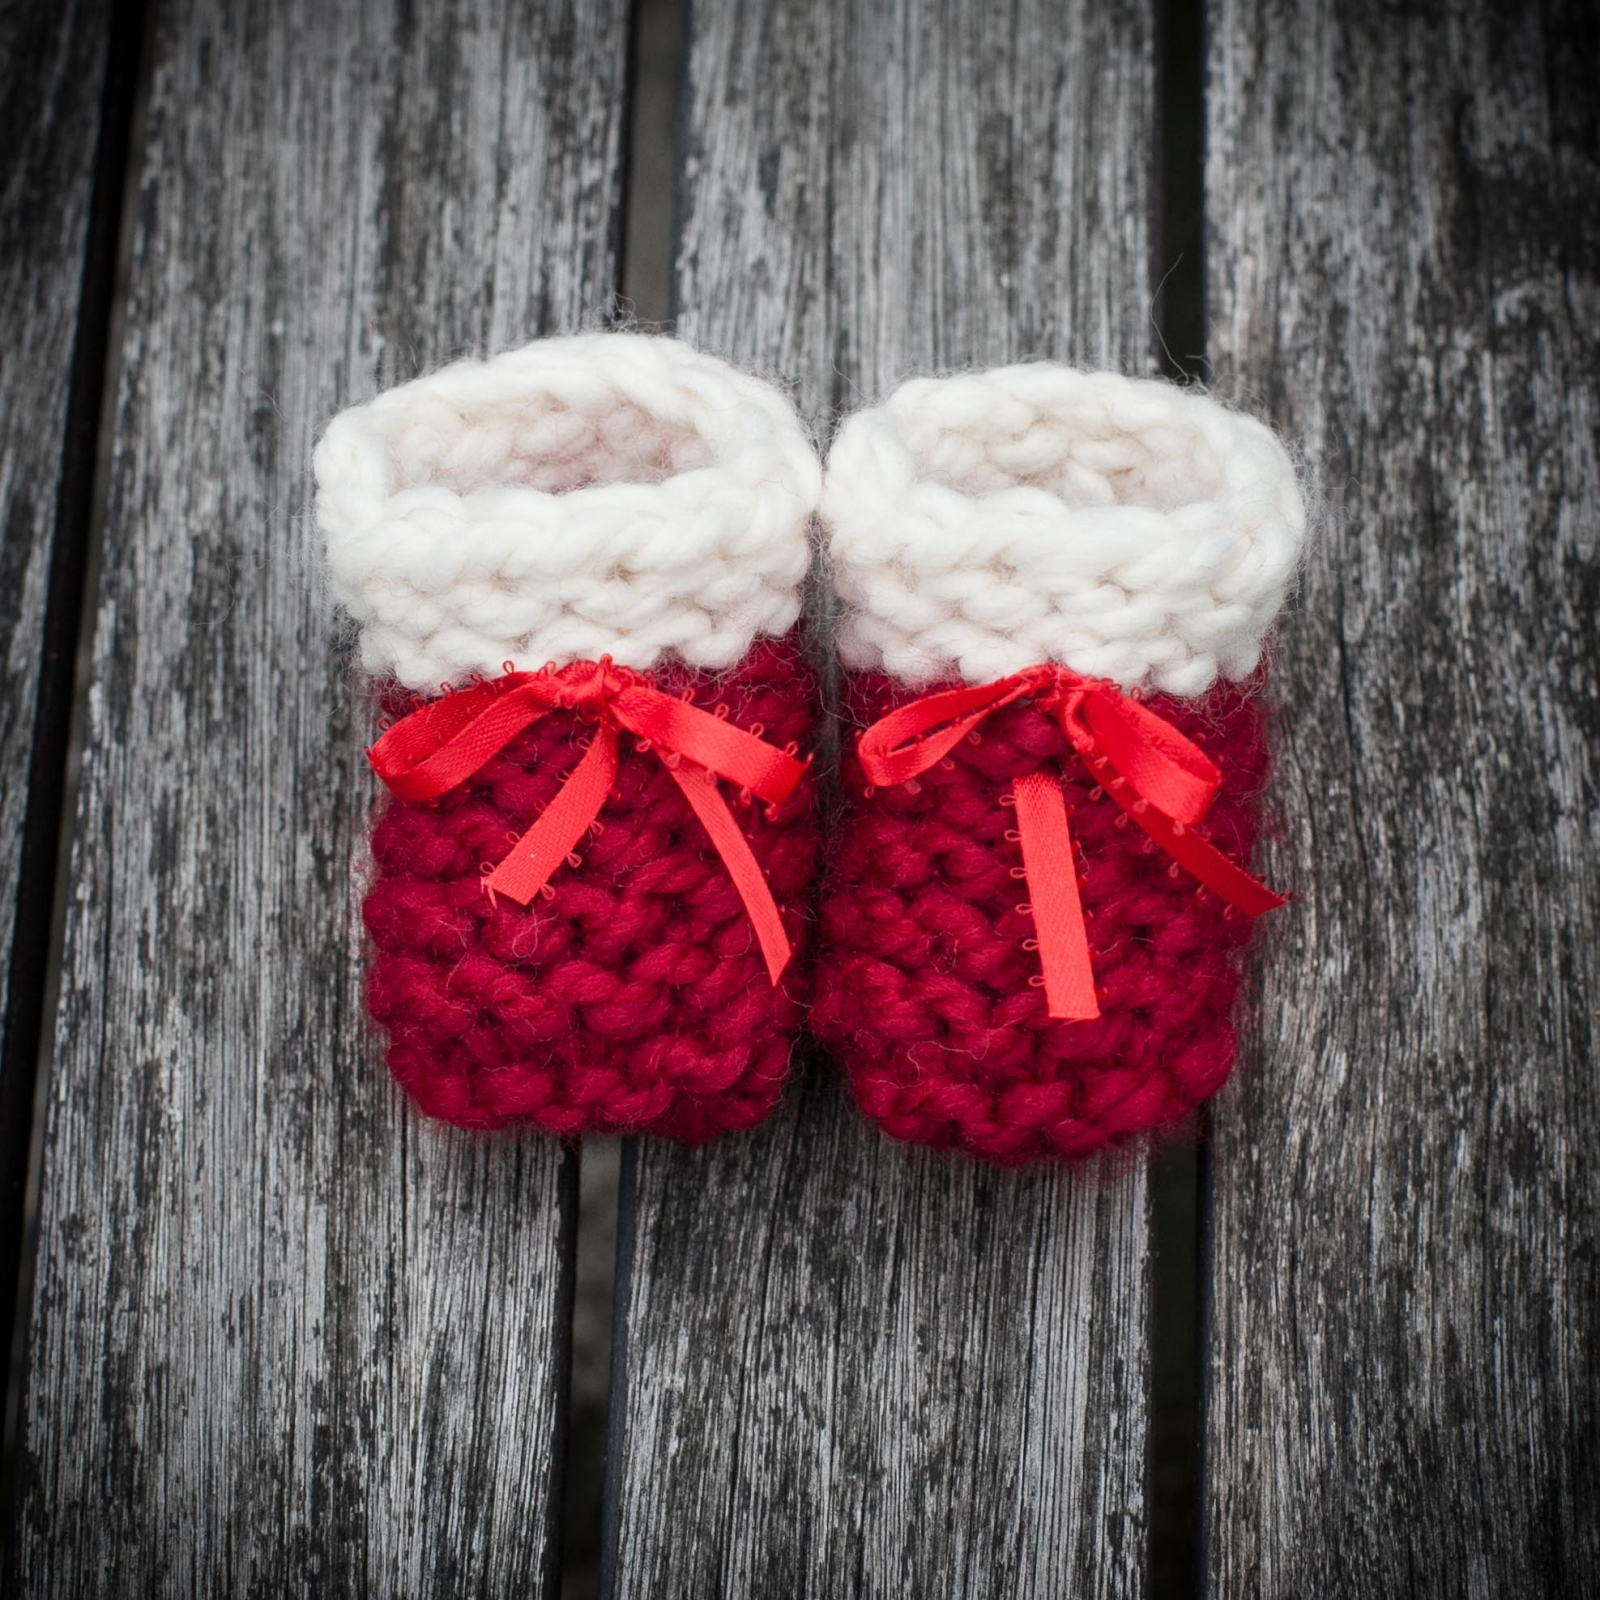 Basic Baby Booties Knitting Pattern Loom Knit Ba Booties Shoes Pattern Beginner Friendly Garter Stitch Booties 4 Sizes Newborn To 12 Months Pdf Pattern Download